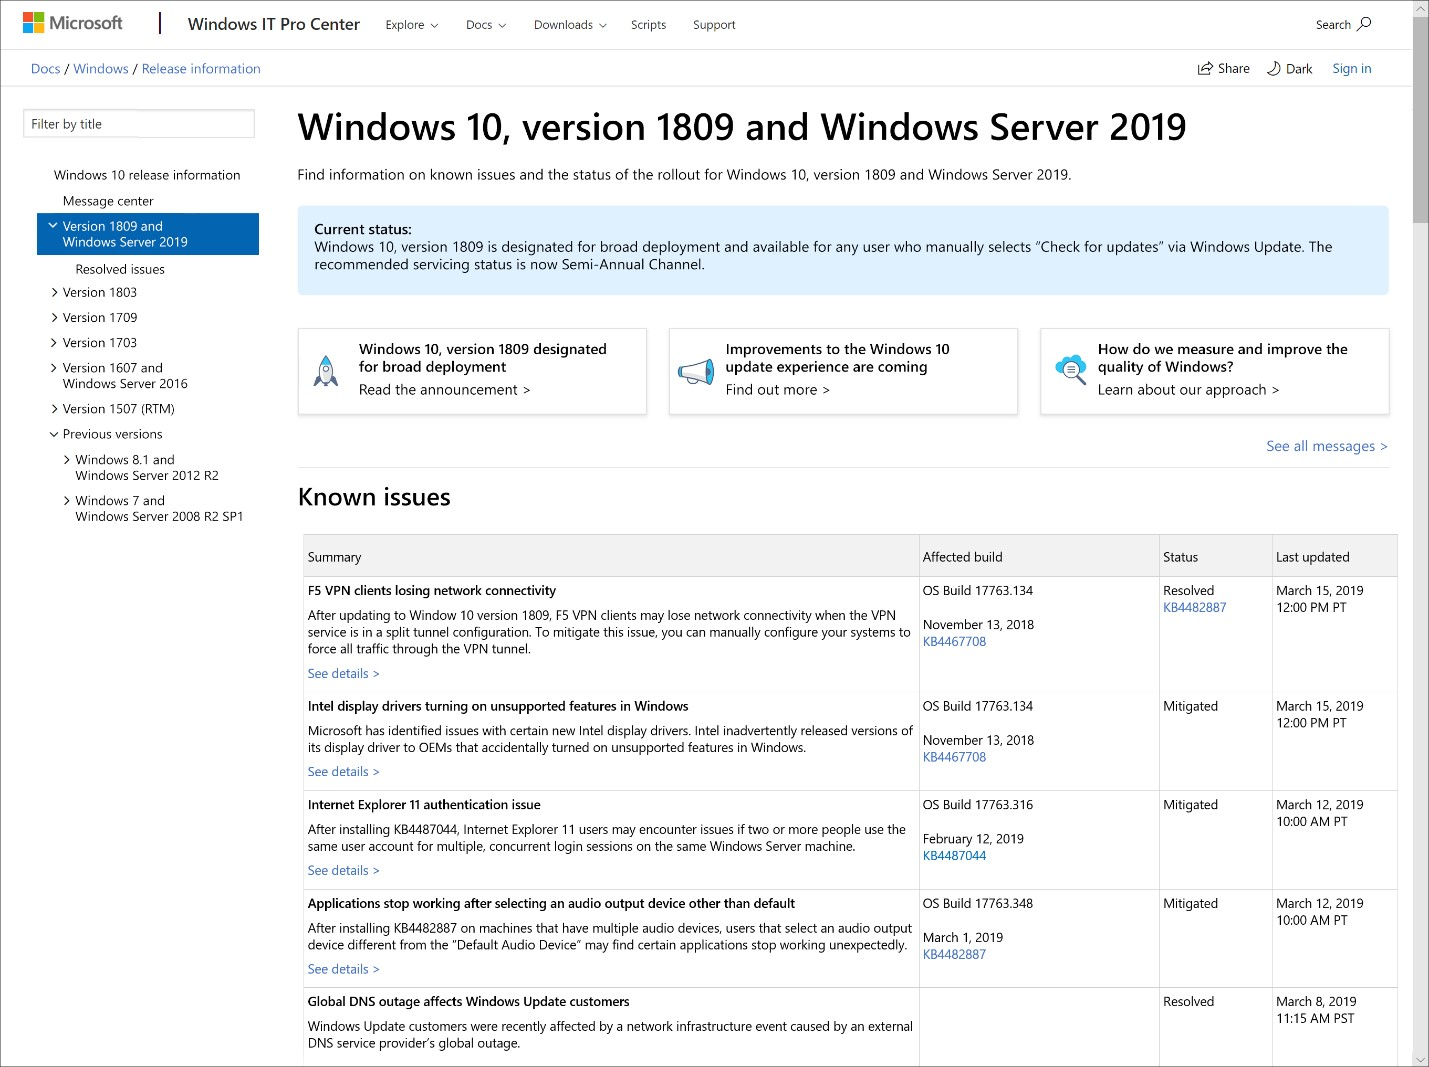 Microsoft Fighting Previous Blunders With Windows 10 May 2019 Update Rollout